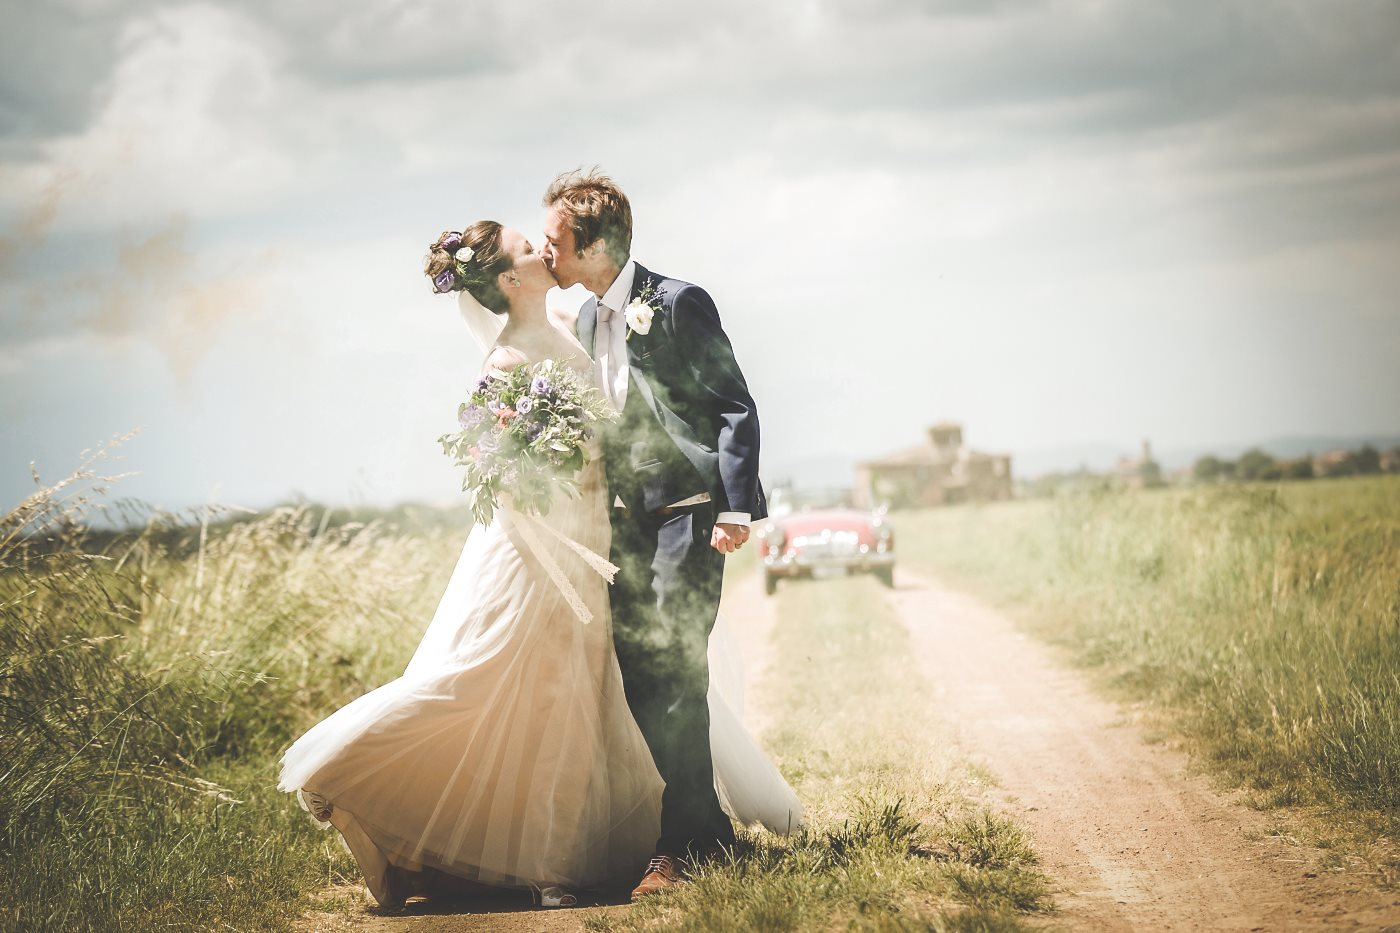 photographer_wedding_cortona_16.jpg